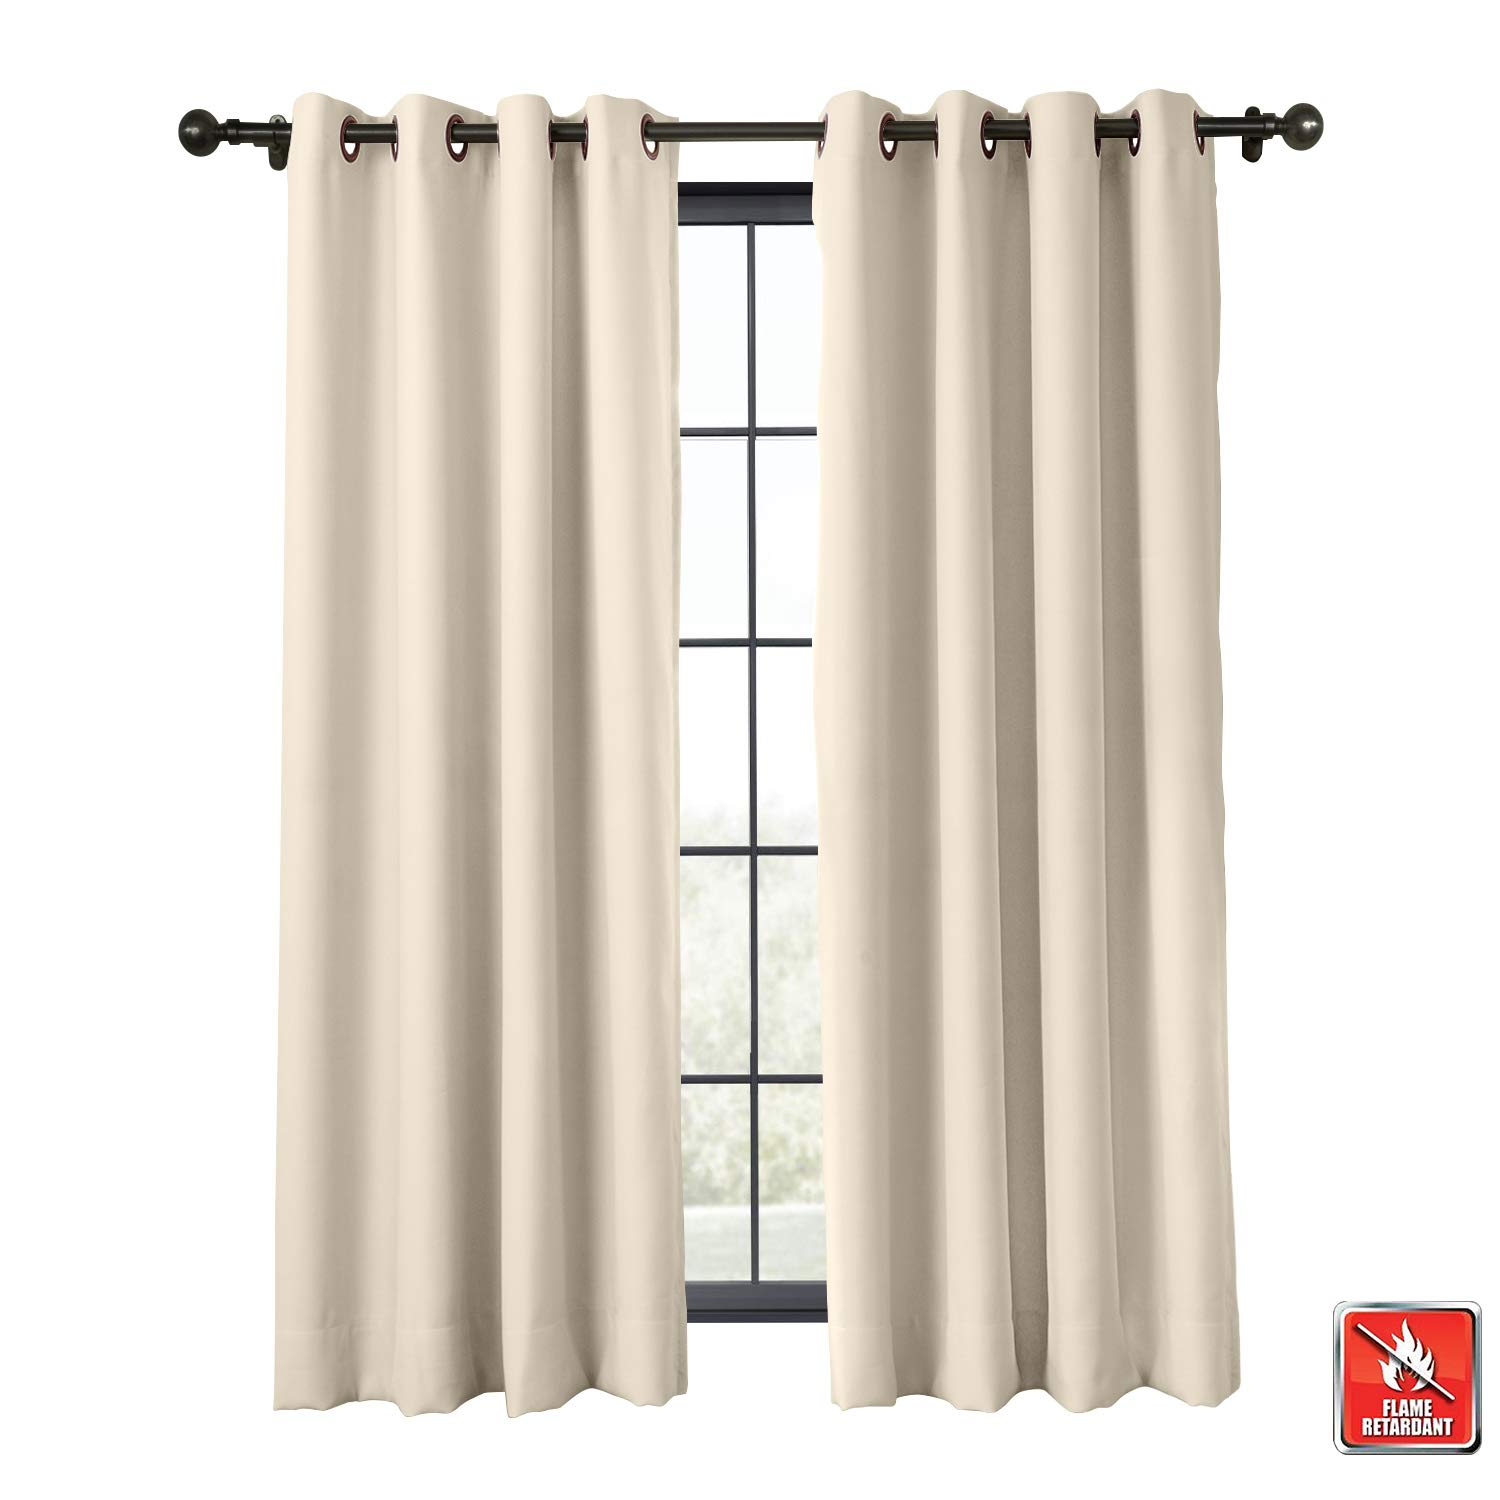 1 Panel Flame Retardant Curtain Antique Bronze Grommet Eyelet Greyish White 46W x 72L Inch Thermal Insulated Blackout ChadMade Exclusive